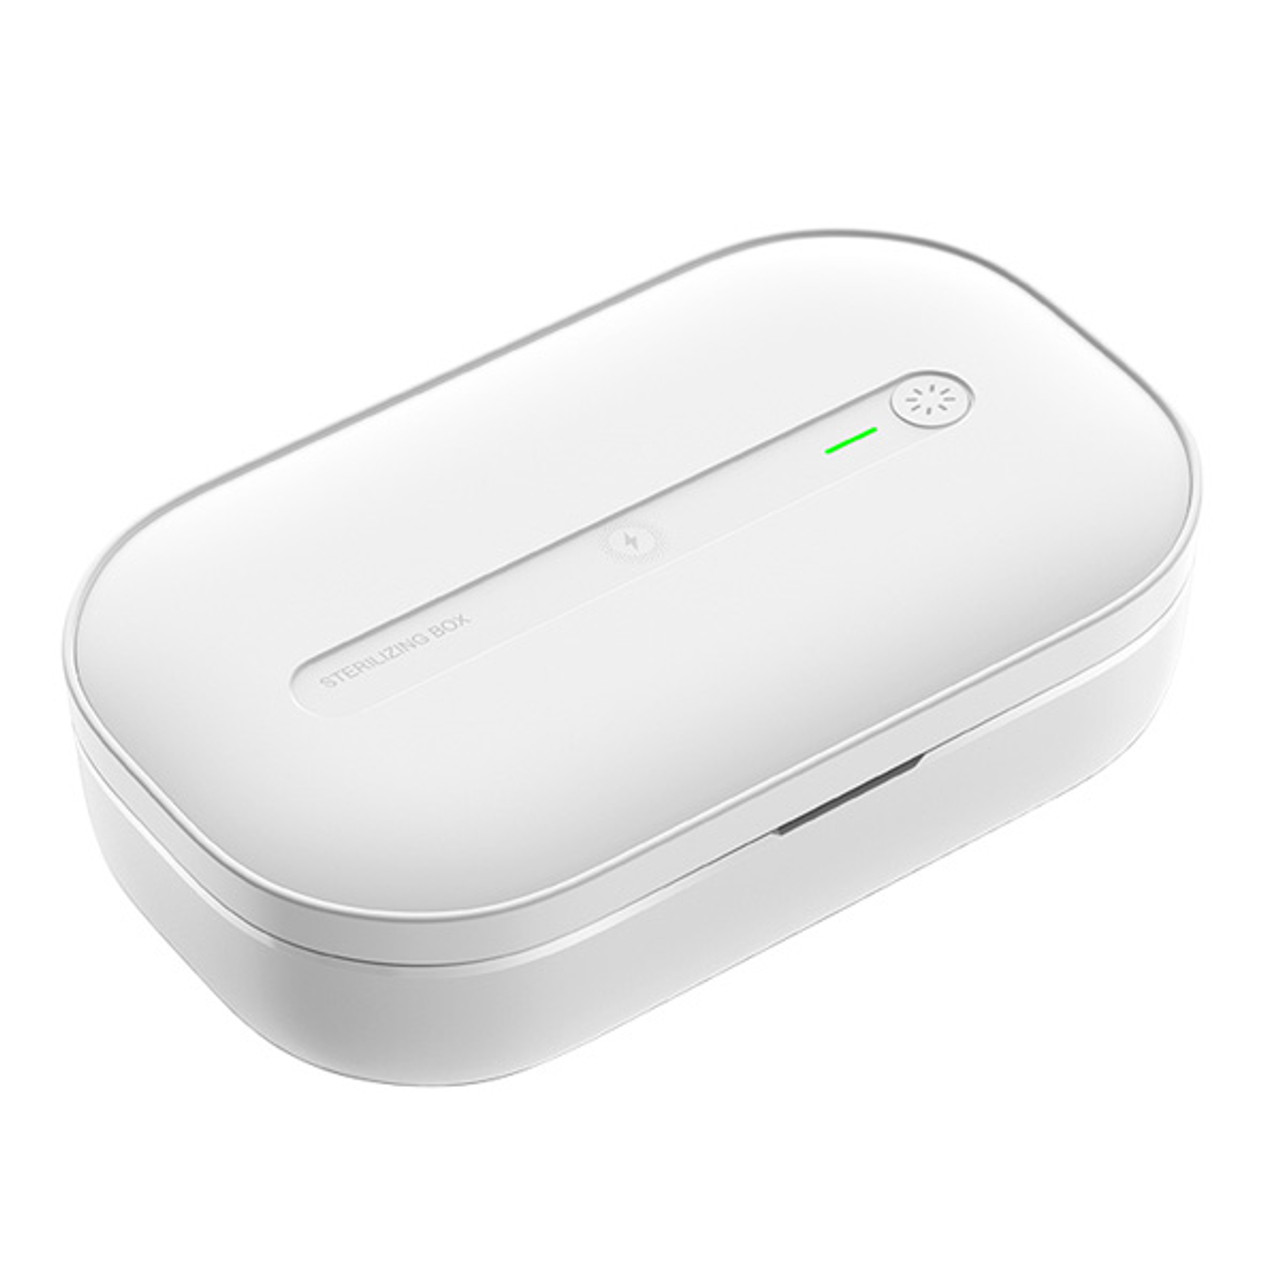 UVC Sterilizing Wireless Charger (Ships September 1st)